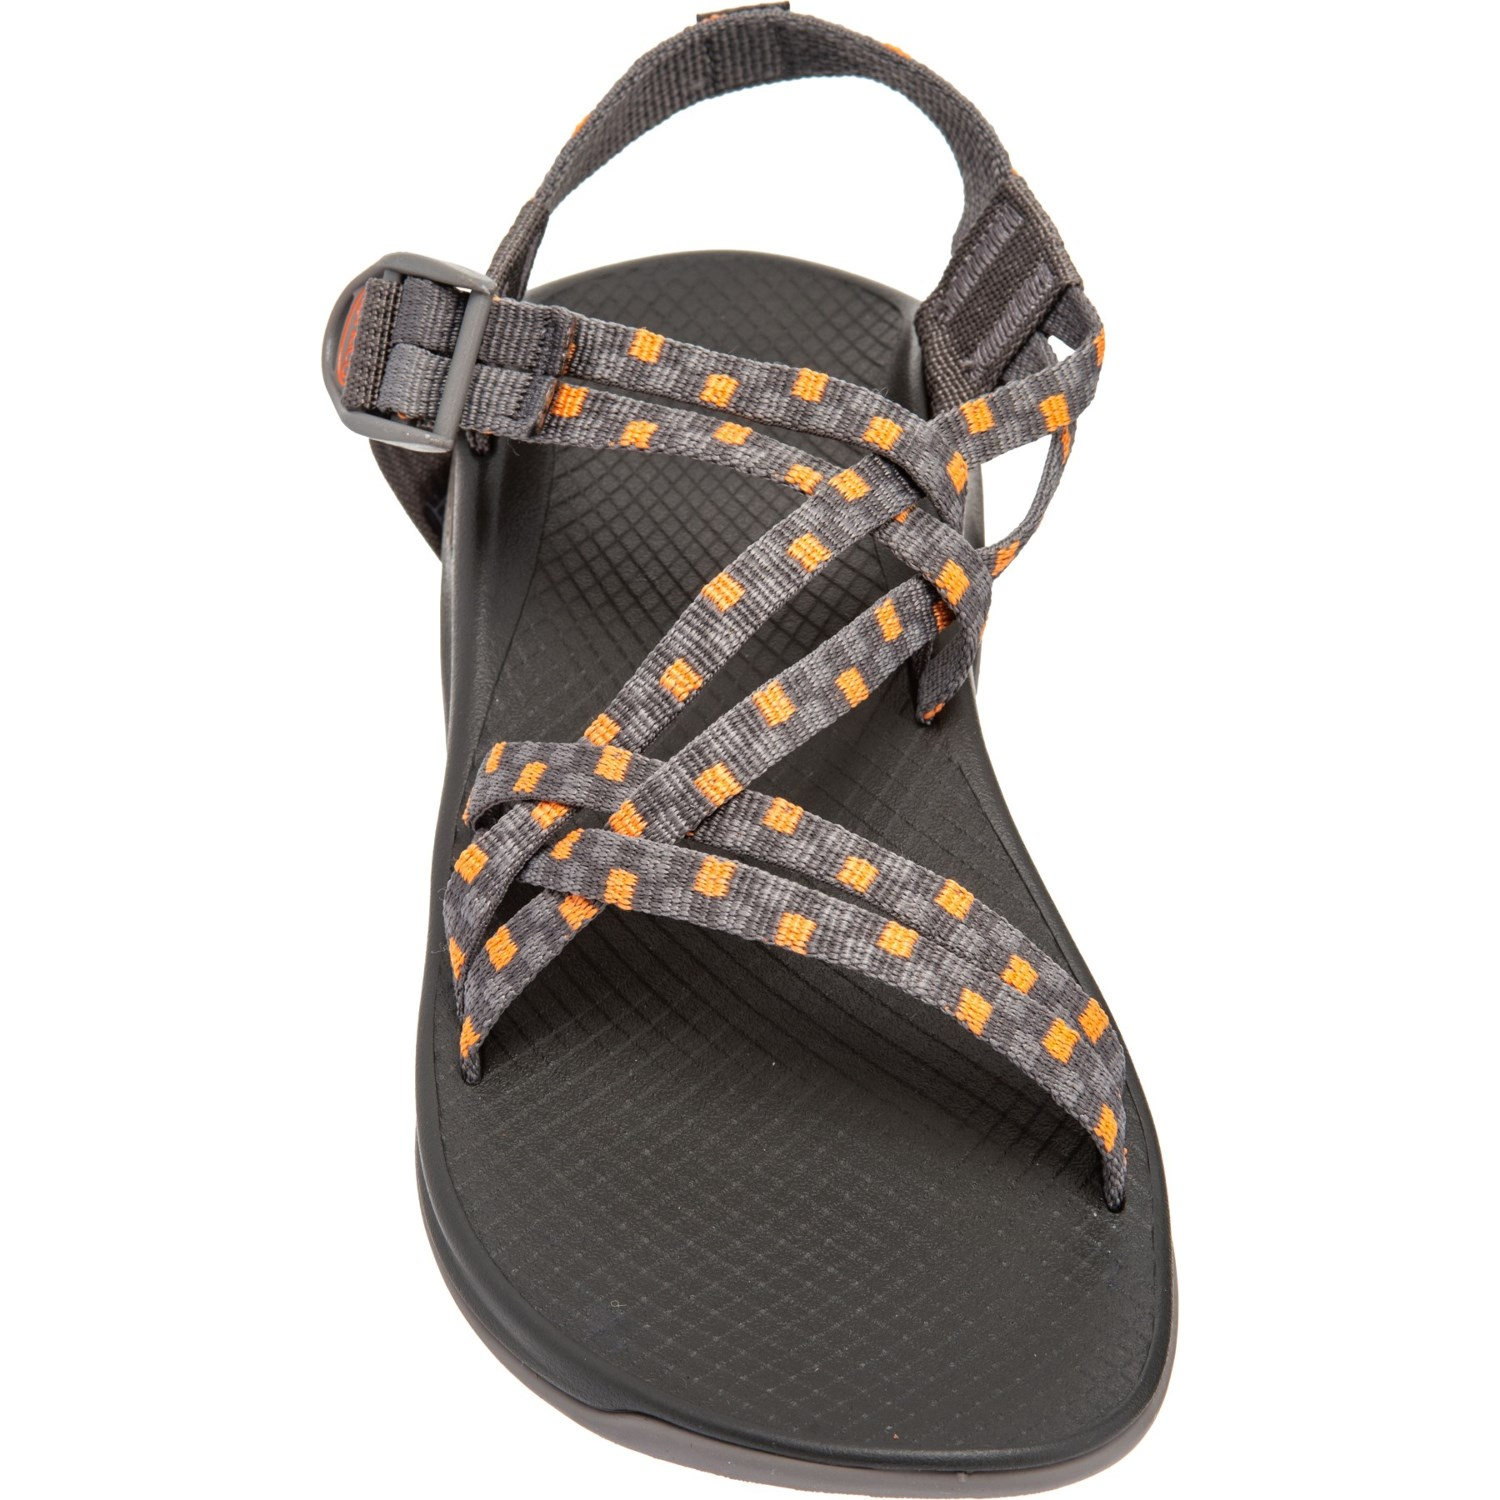 155214df28c5 Chaco Z Eddy X1 Sport Sandals (For Women) - Save 44%